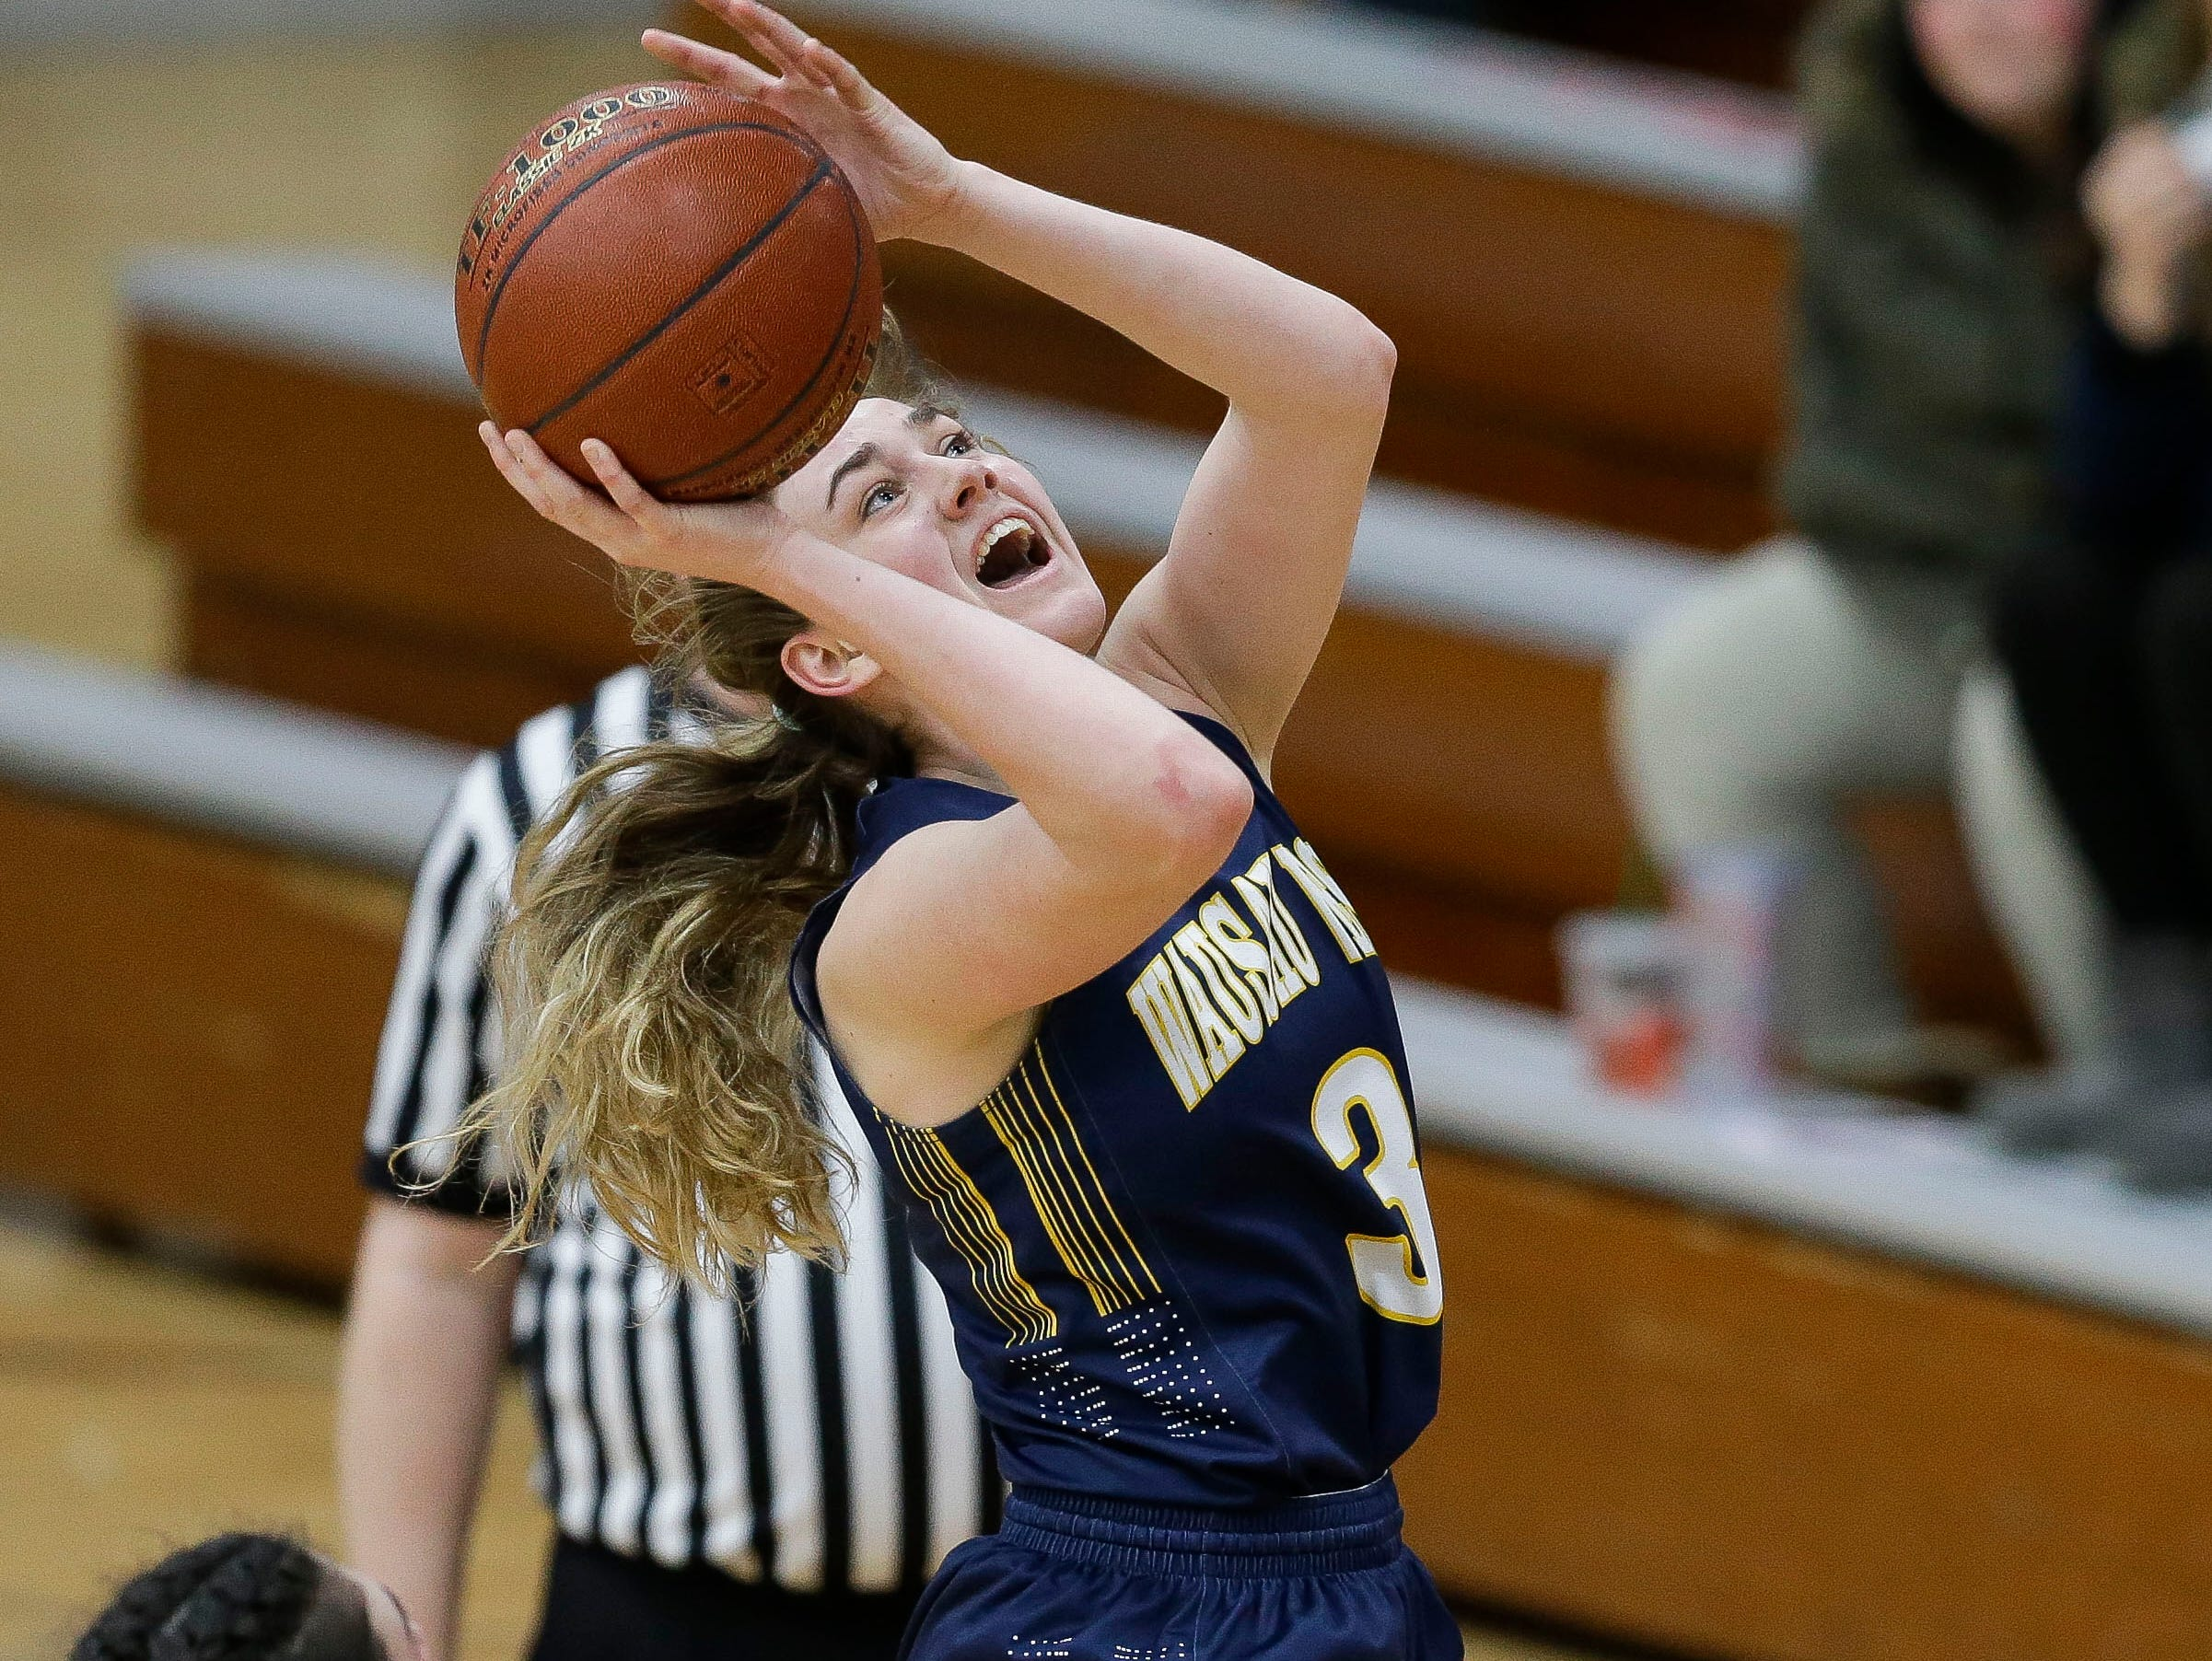 Wausau West's Kadie Deaton (3) goes up for a layup against SPASH on Thursday, February 14, 2019, at SPASH in Stevens Point, Wis.Tork Mason/USA TODAY NETWORK-Wisconsin